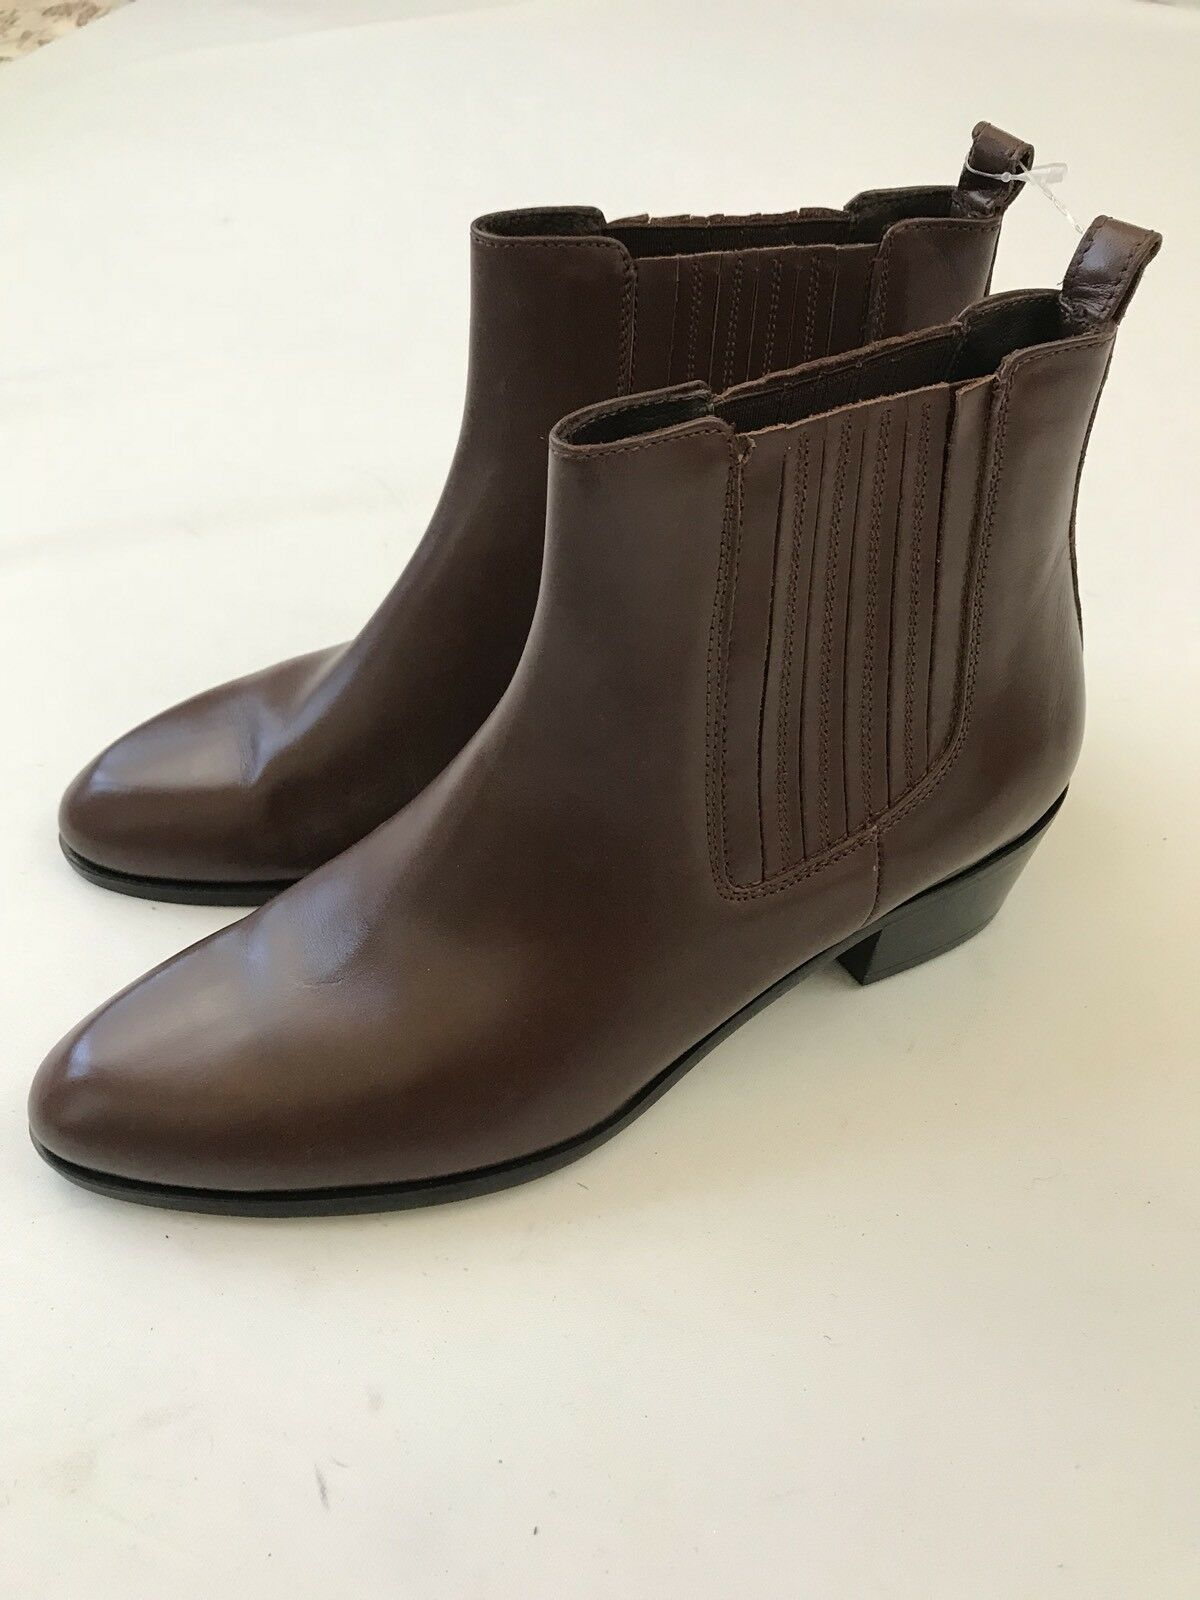 J Crew Chelsea Boot Ankle Boot Womens Booties Brown Size 7 Style 03002 New